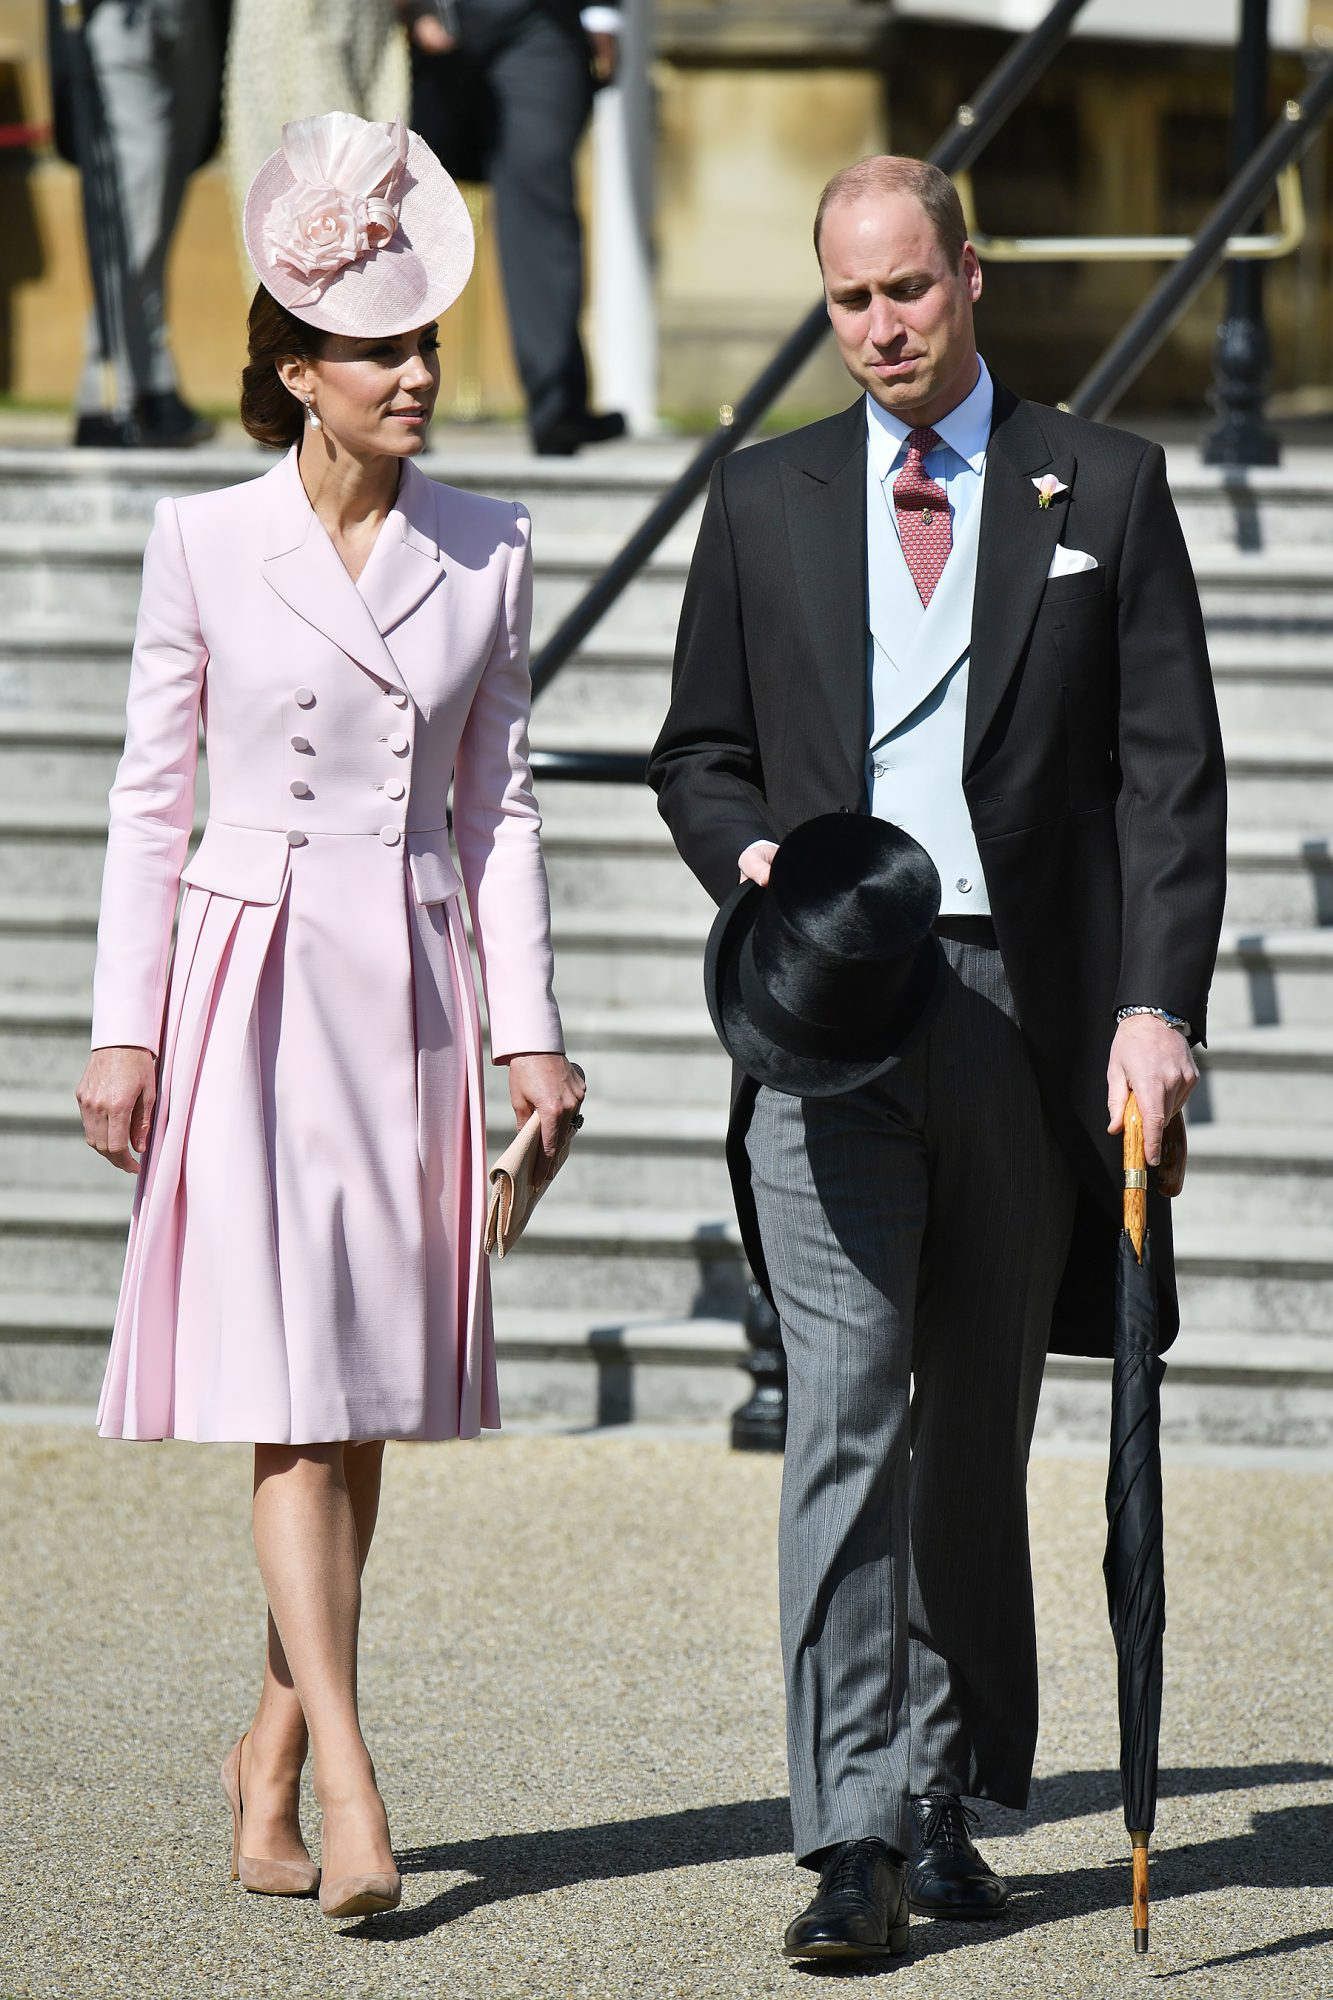 Britain's Prince William, Duke of Cambridge and Britain's Catherine, Duchess of Cambridge attend the Queen's Garden Party at Buckingham Palace in central London on May 21, 2019